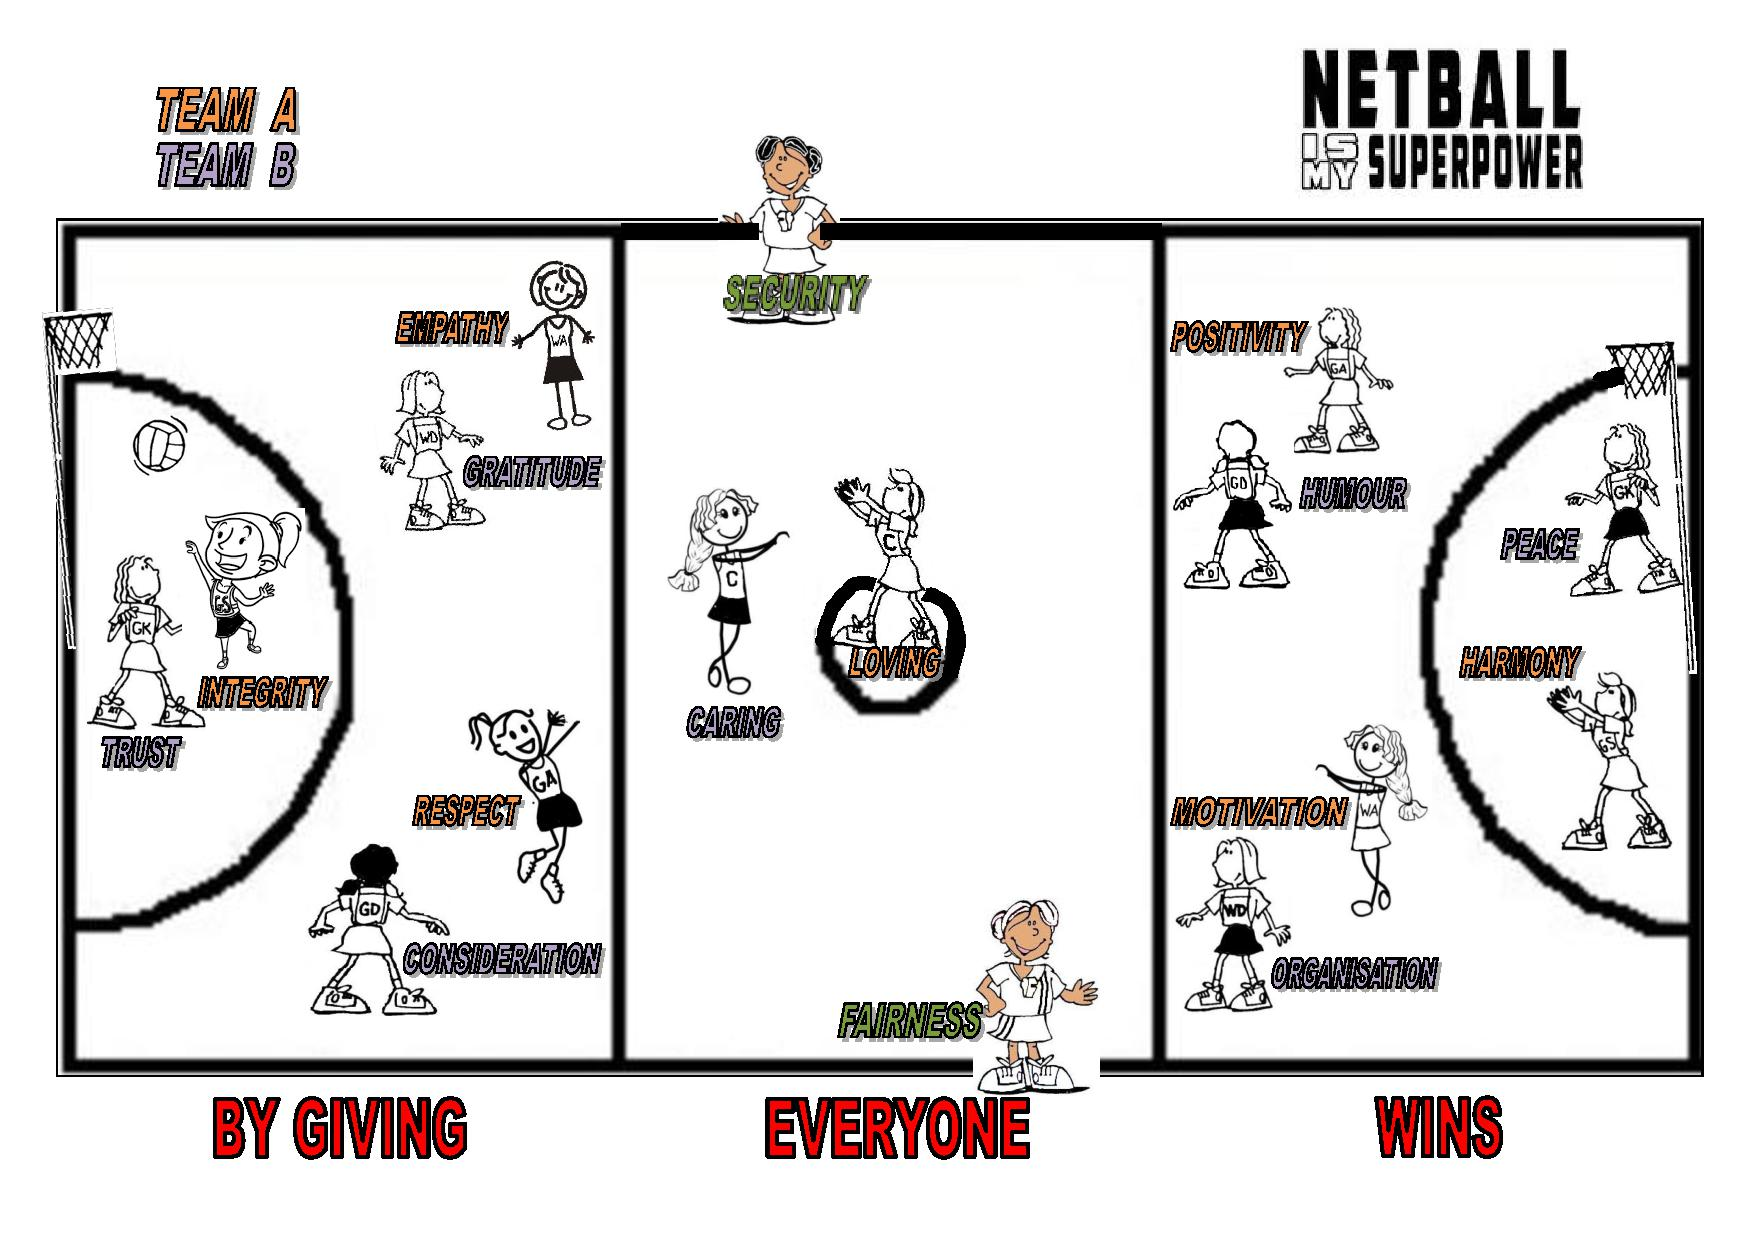 netball court measurement diagram thermostat x2 wire pin on pinterest